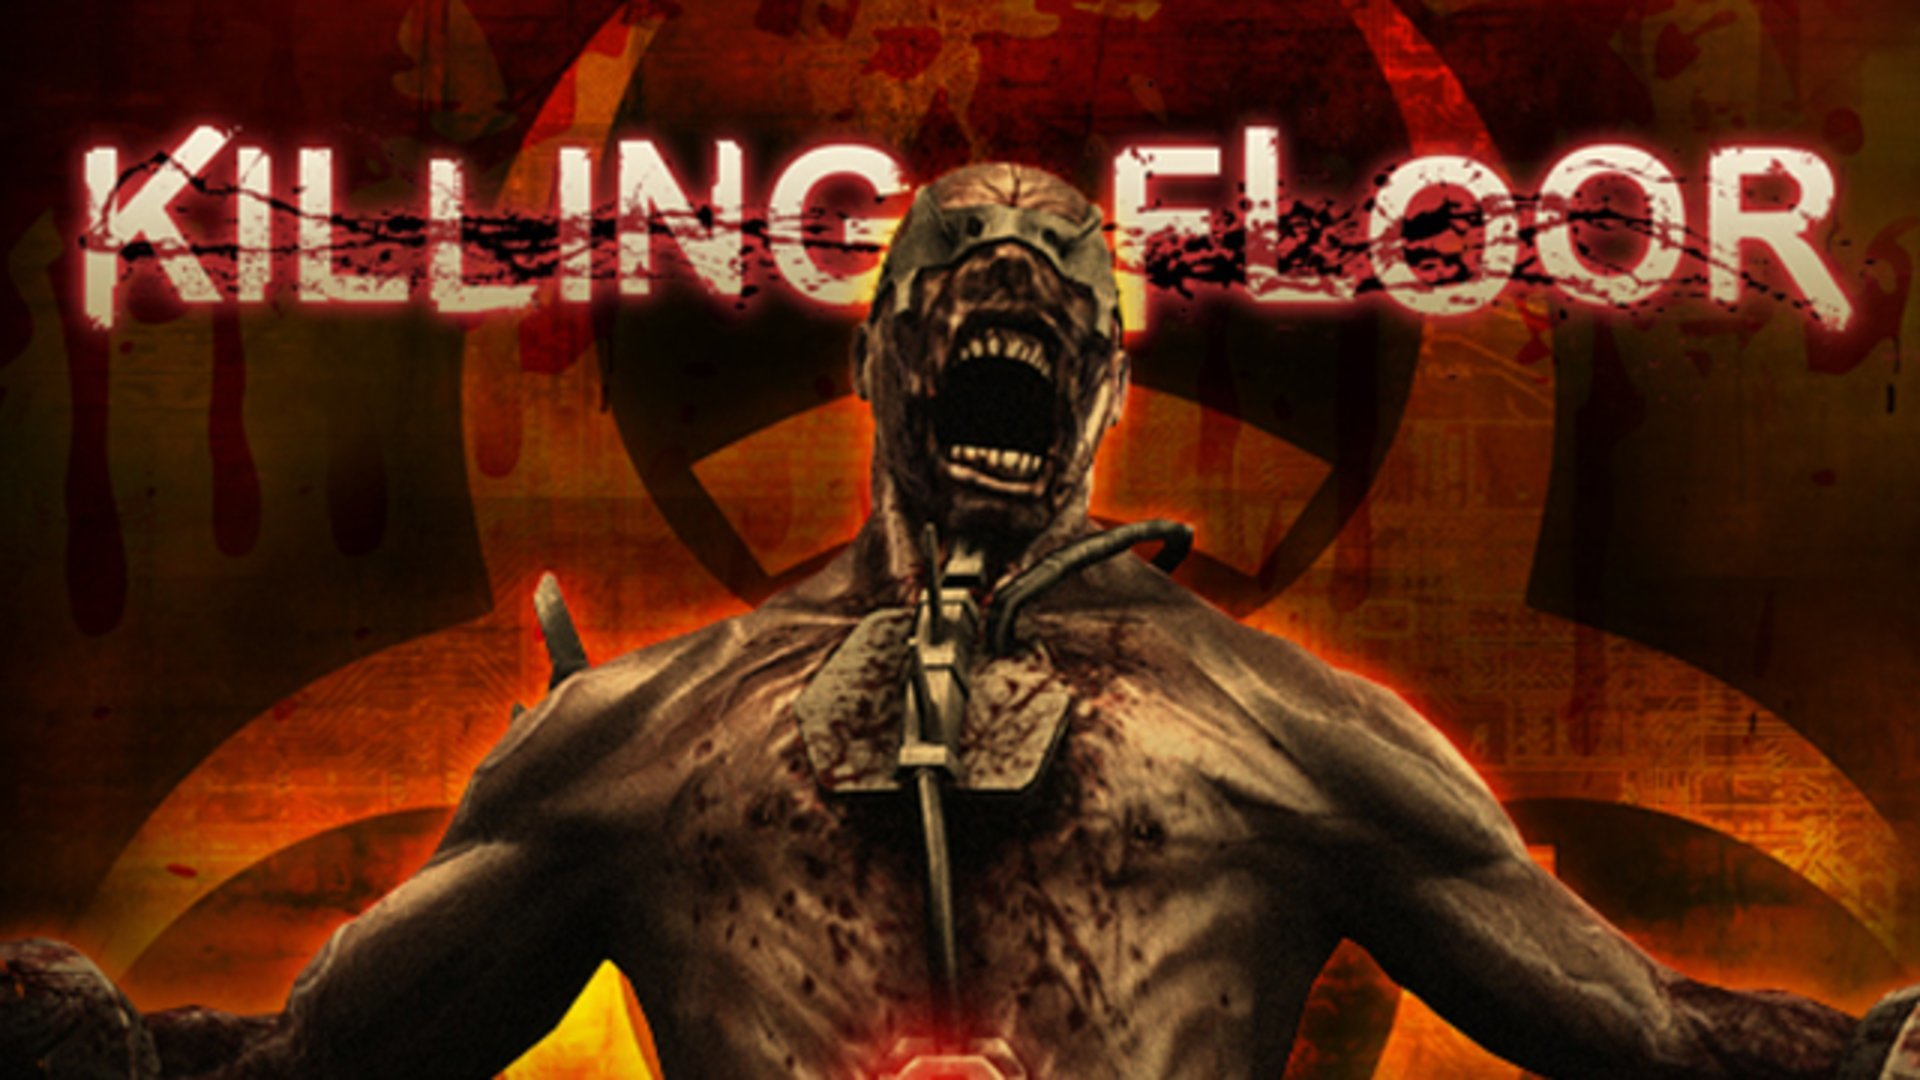 Killing Floor 2 CD KEY + Highly Compressed PC Game Free Download